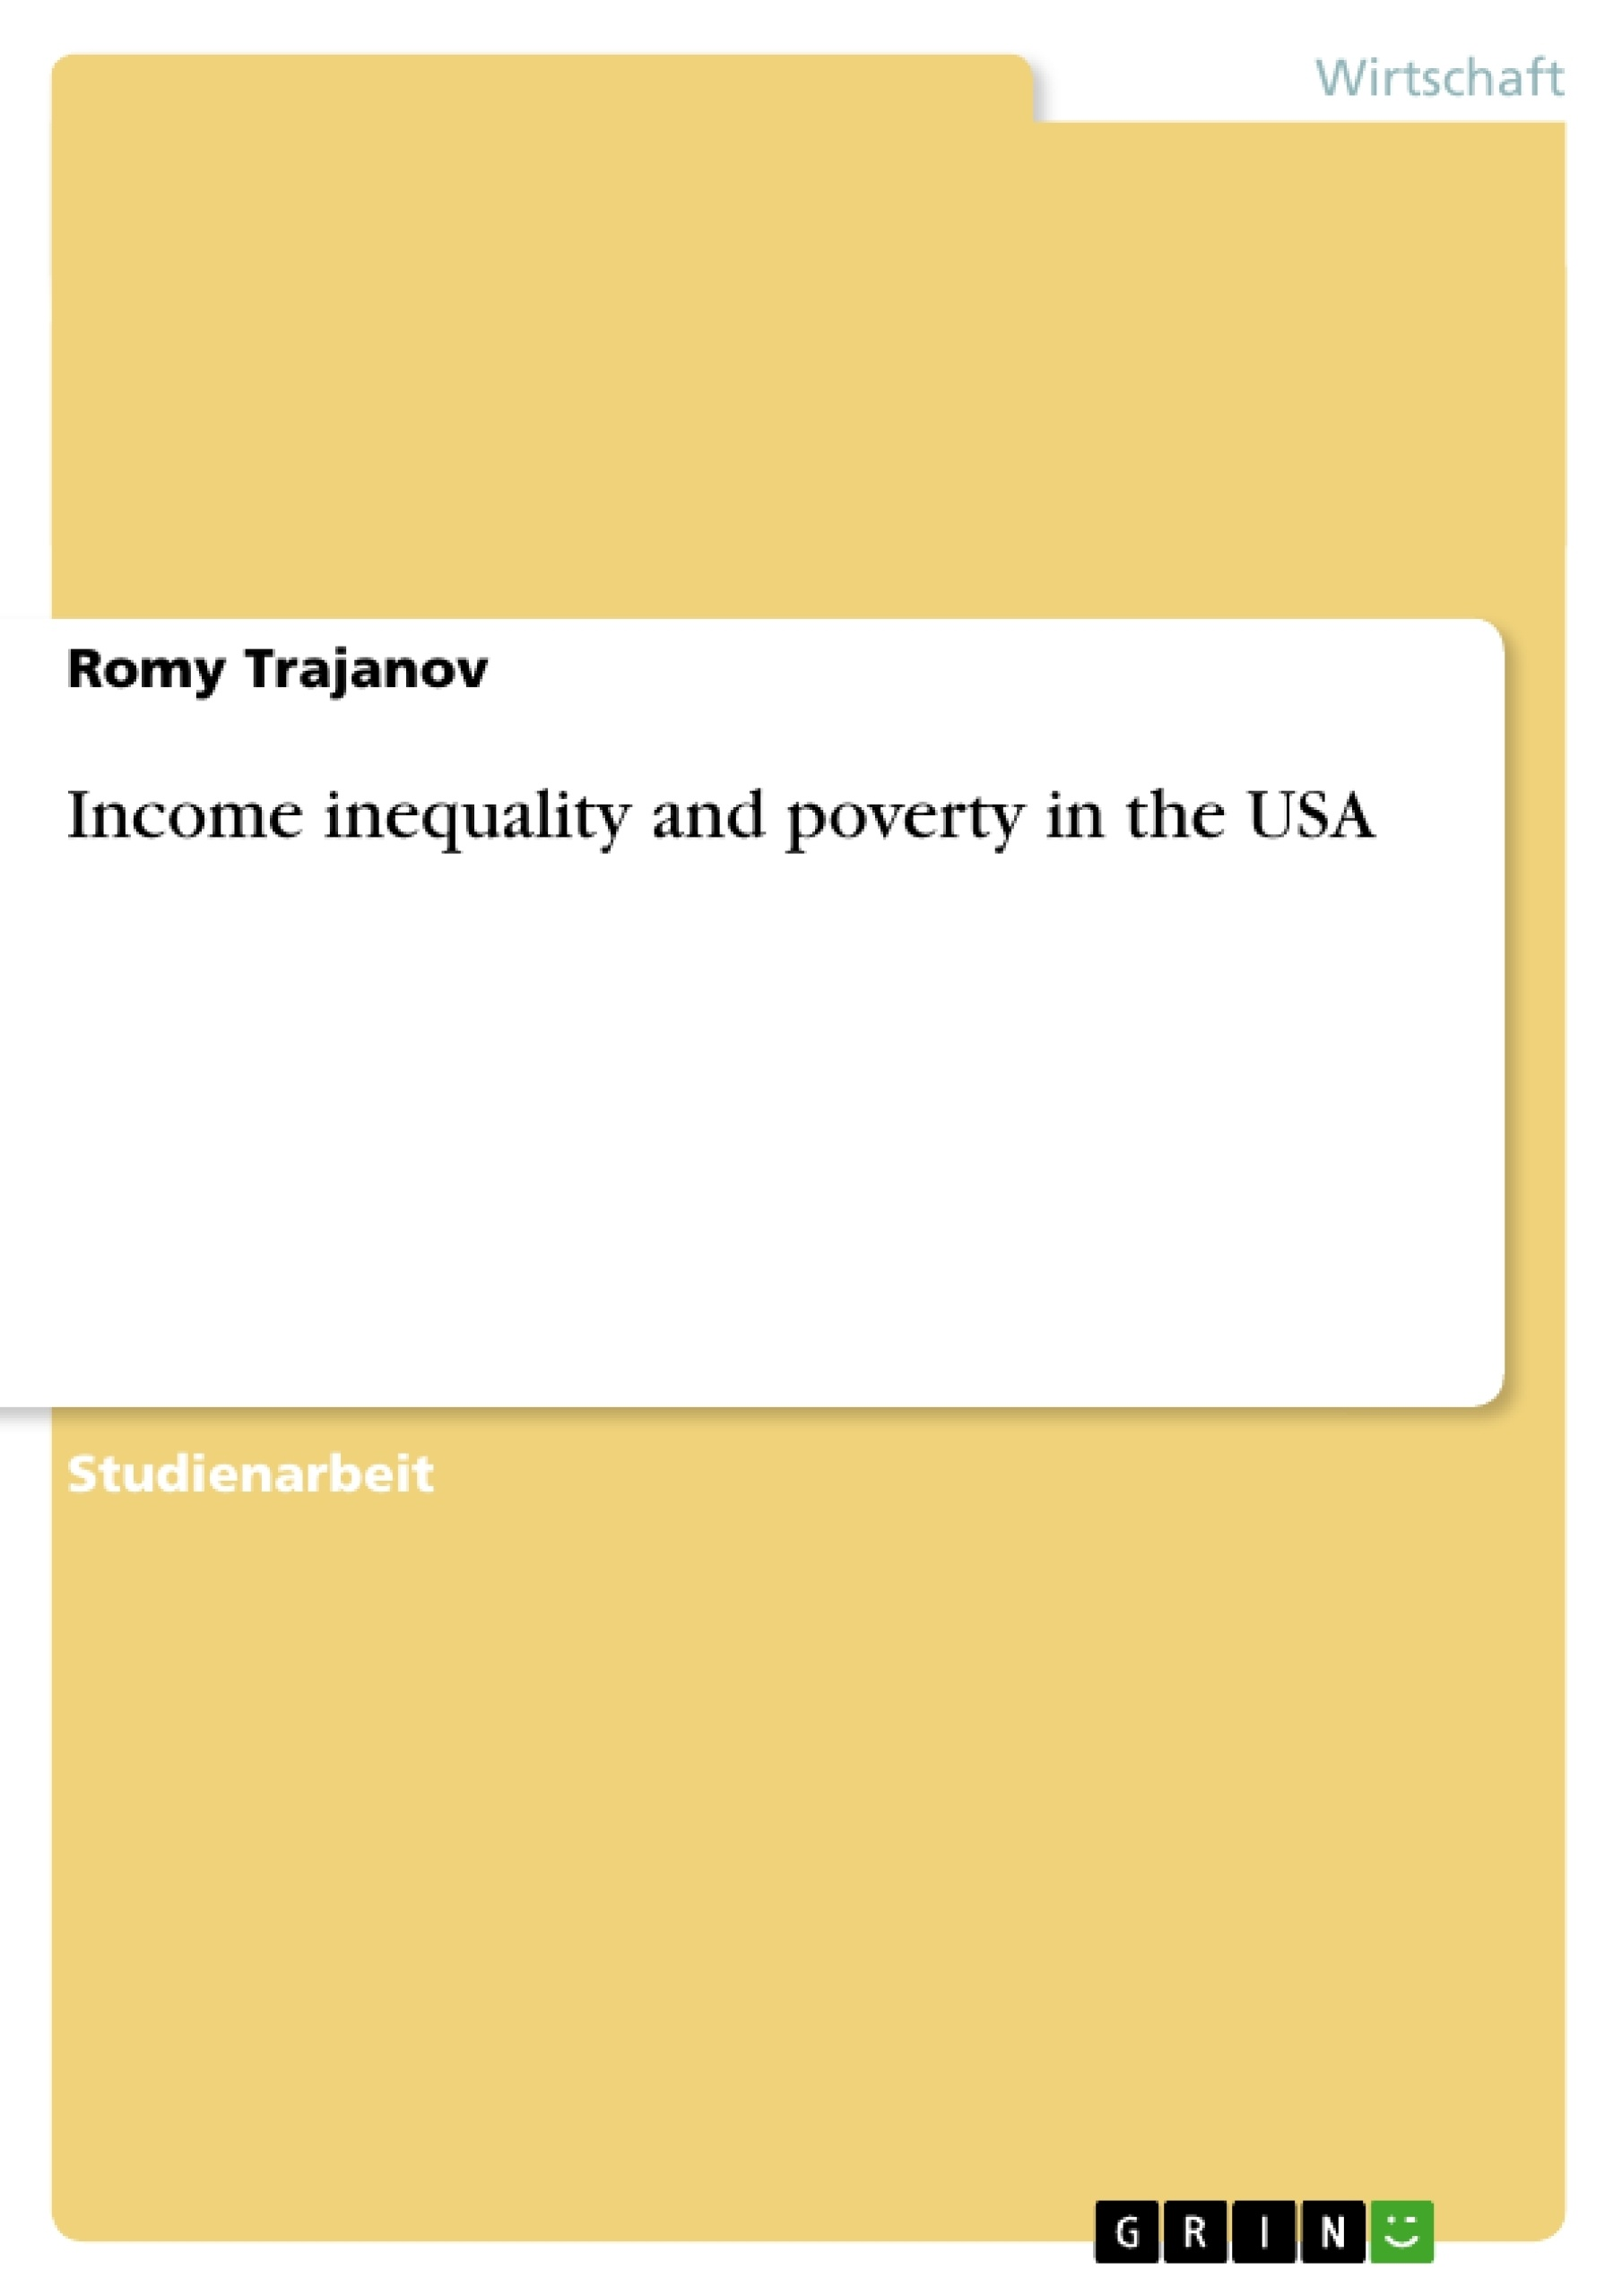 Titel: Income inequality and poverty in the USA